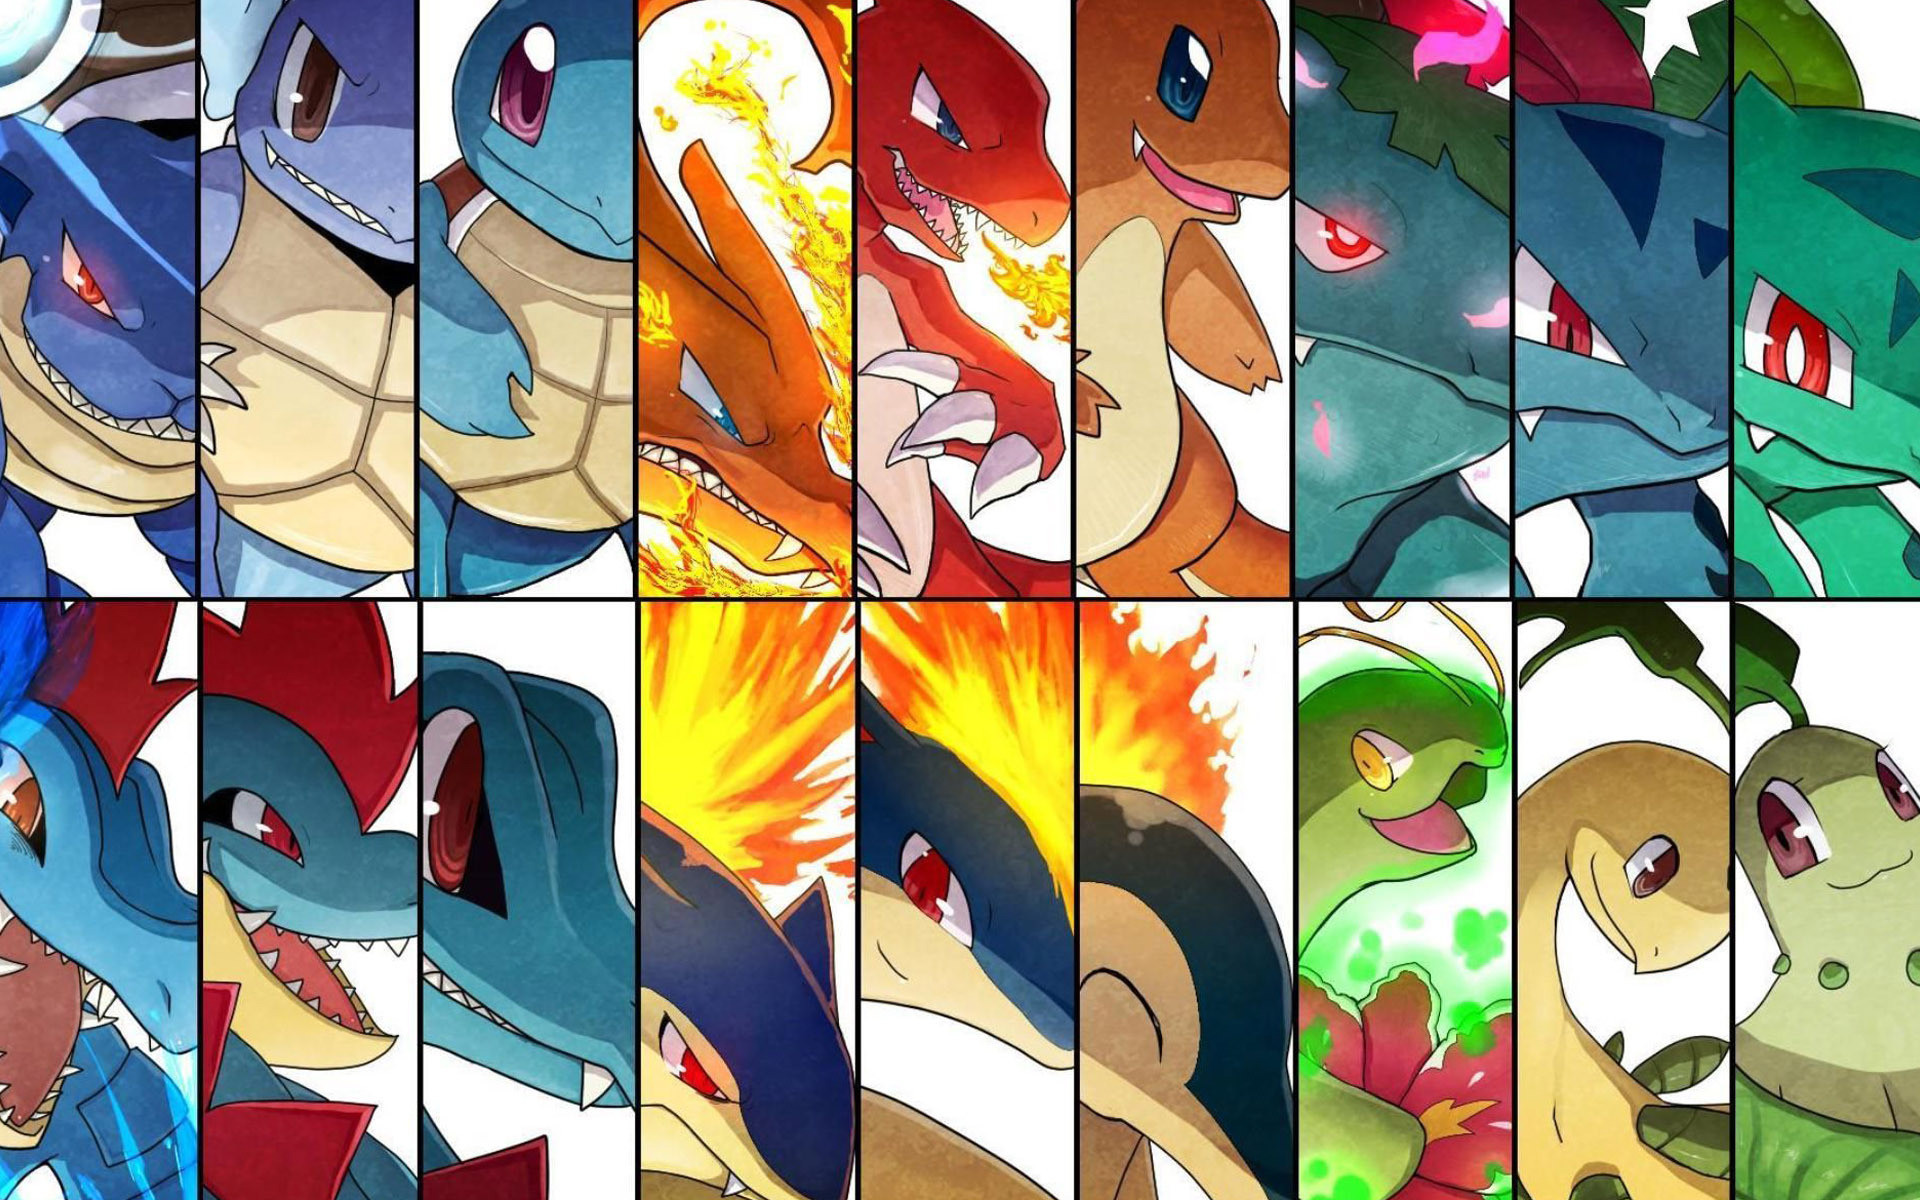 1920x1080 I Am Starting To Use Photoshop And Made This Cyndaquil Wallpaper